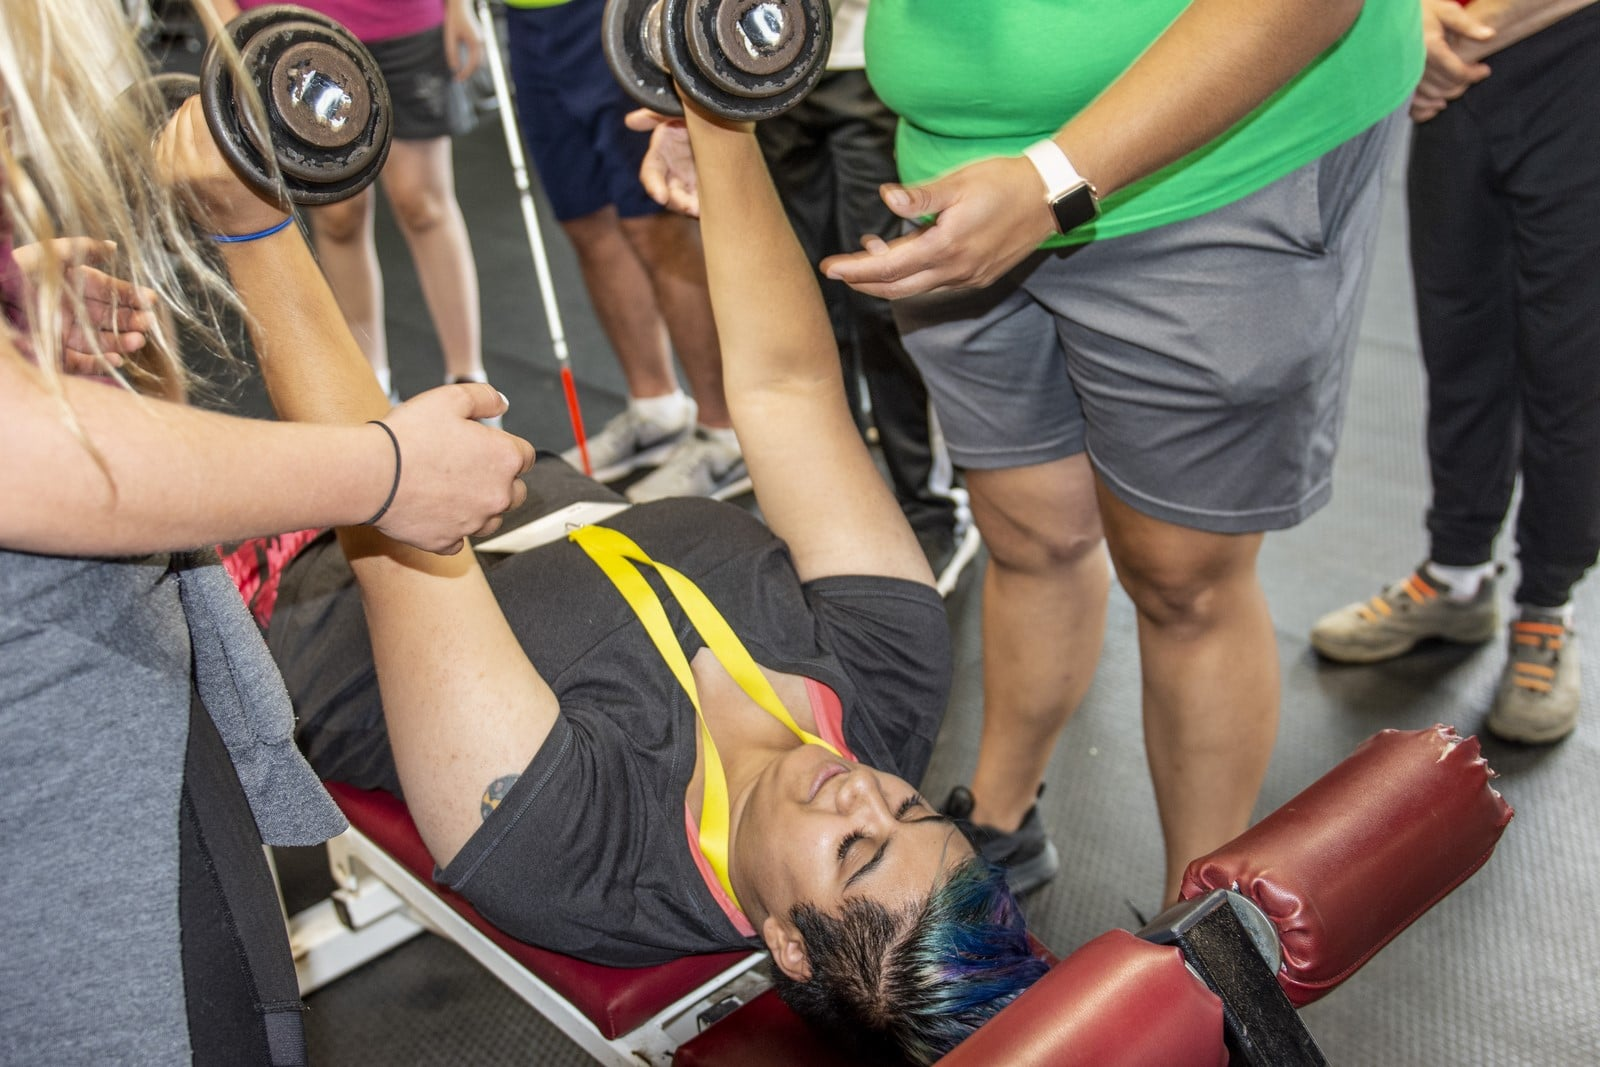 An athlete lies on a bench and presses weights to the sky while others look on